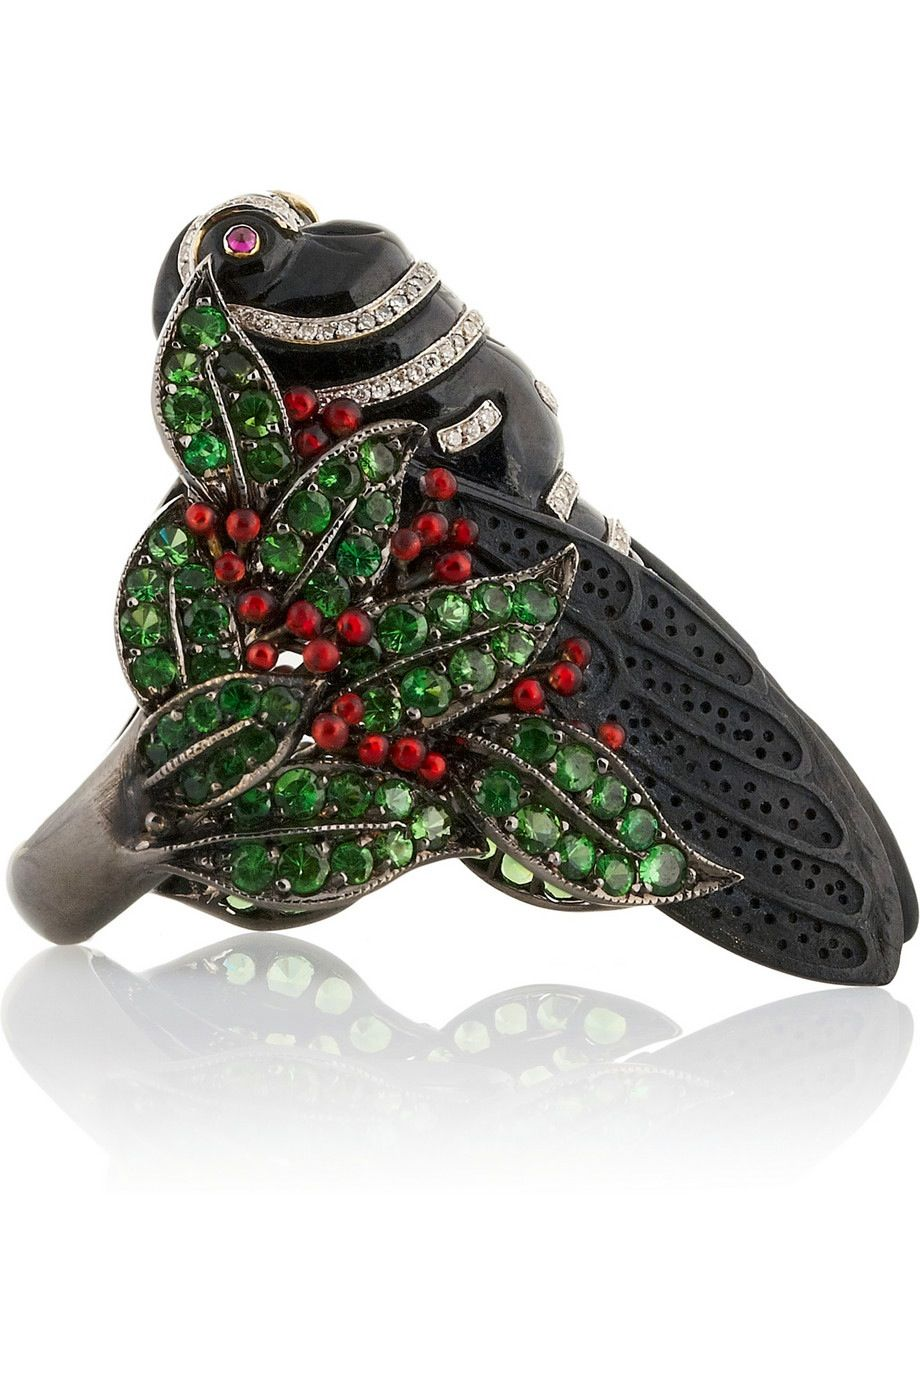 LYDIA COURTEILLE || Bestiary 18K blackened White Gold Multistone Ring 30,880 USD || Lydia Courteille's handmade 18-karat blackened White Gold Ring features a magnificent jewelled Insect Design. Adorned with Pavé Diamonds, Garnets and Red Sapphires, this weighty One-of-a-Kind style is a glimmering conversation piece.